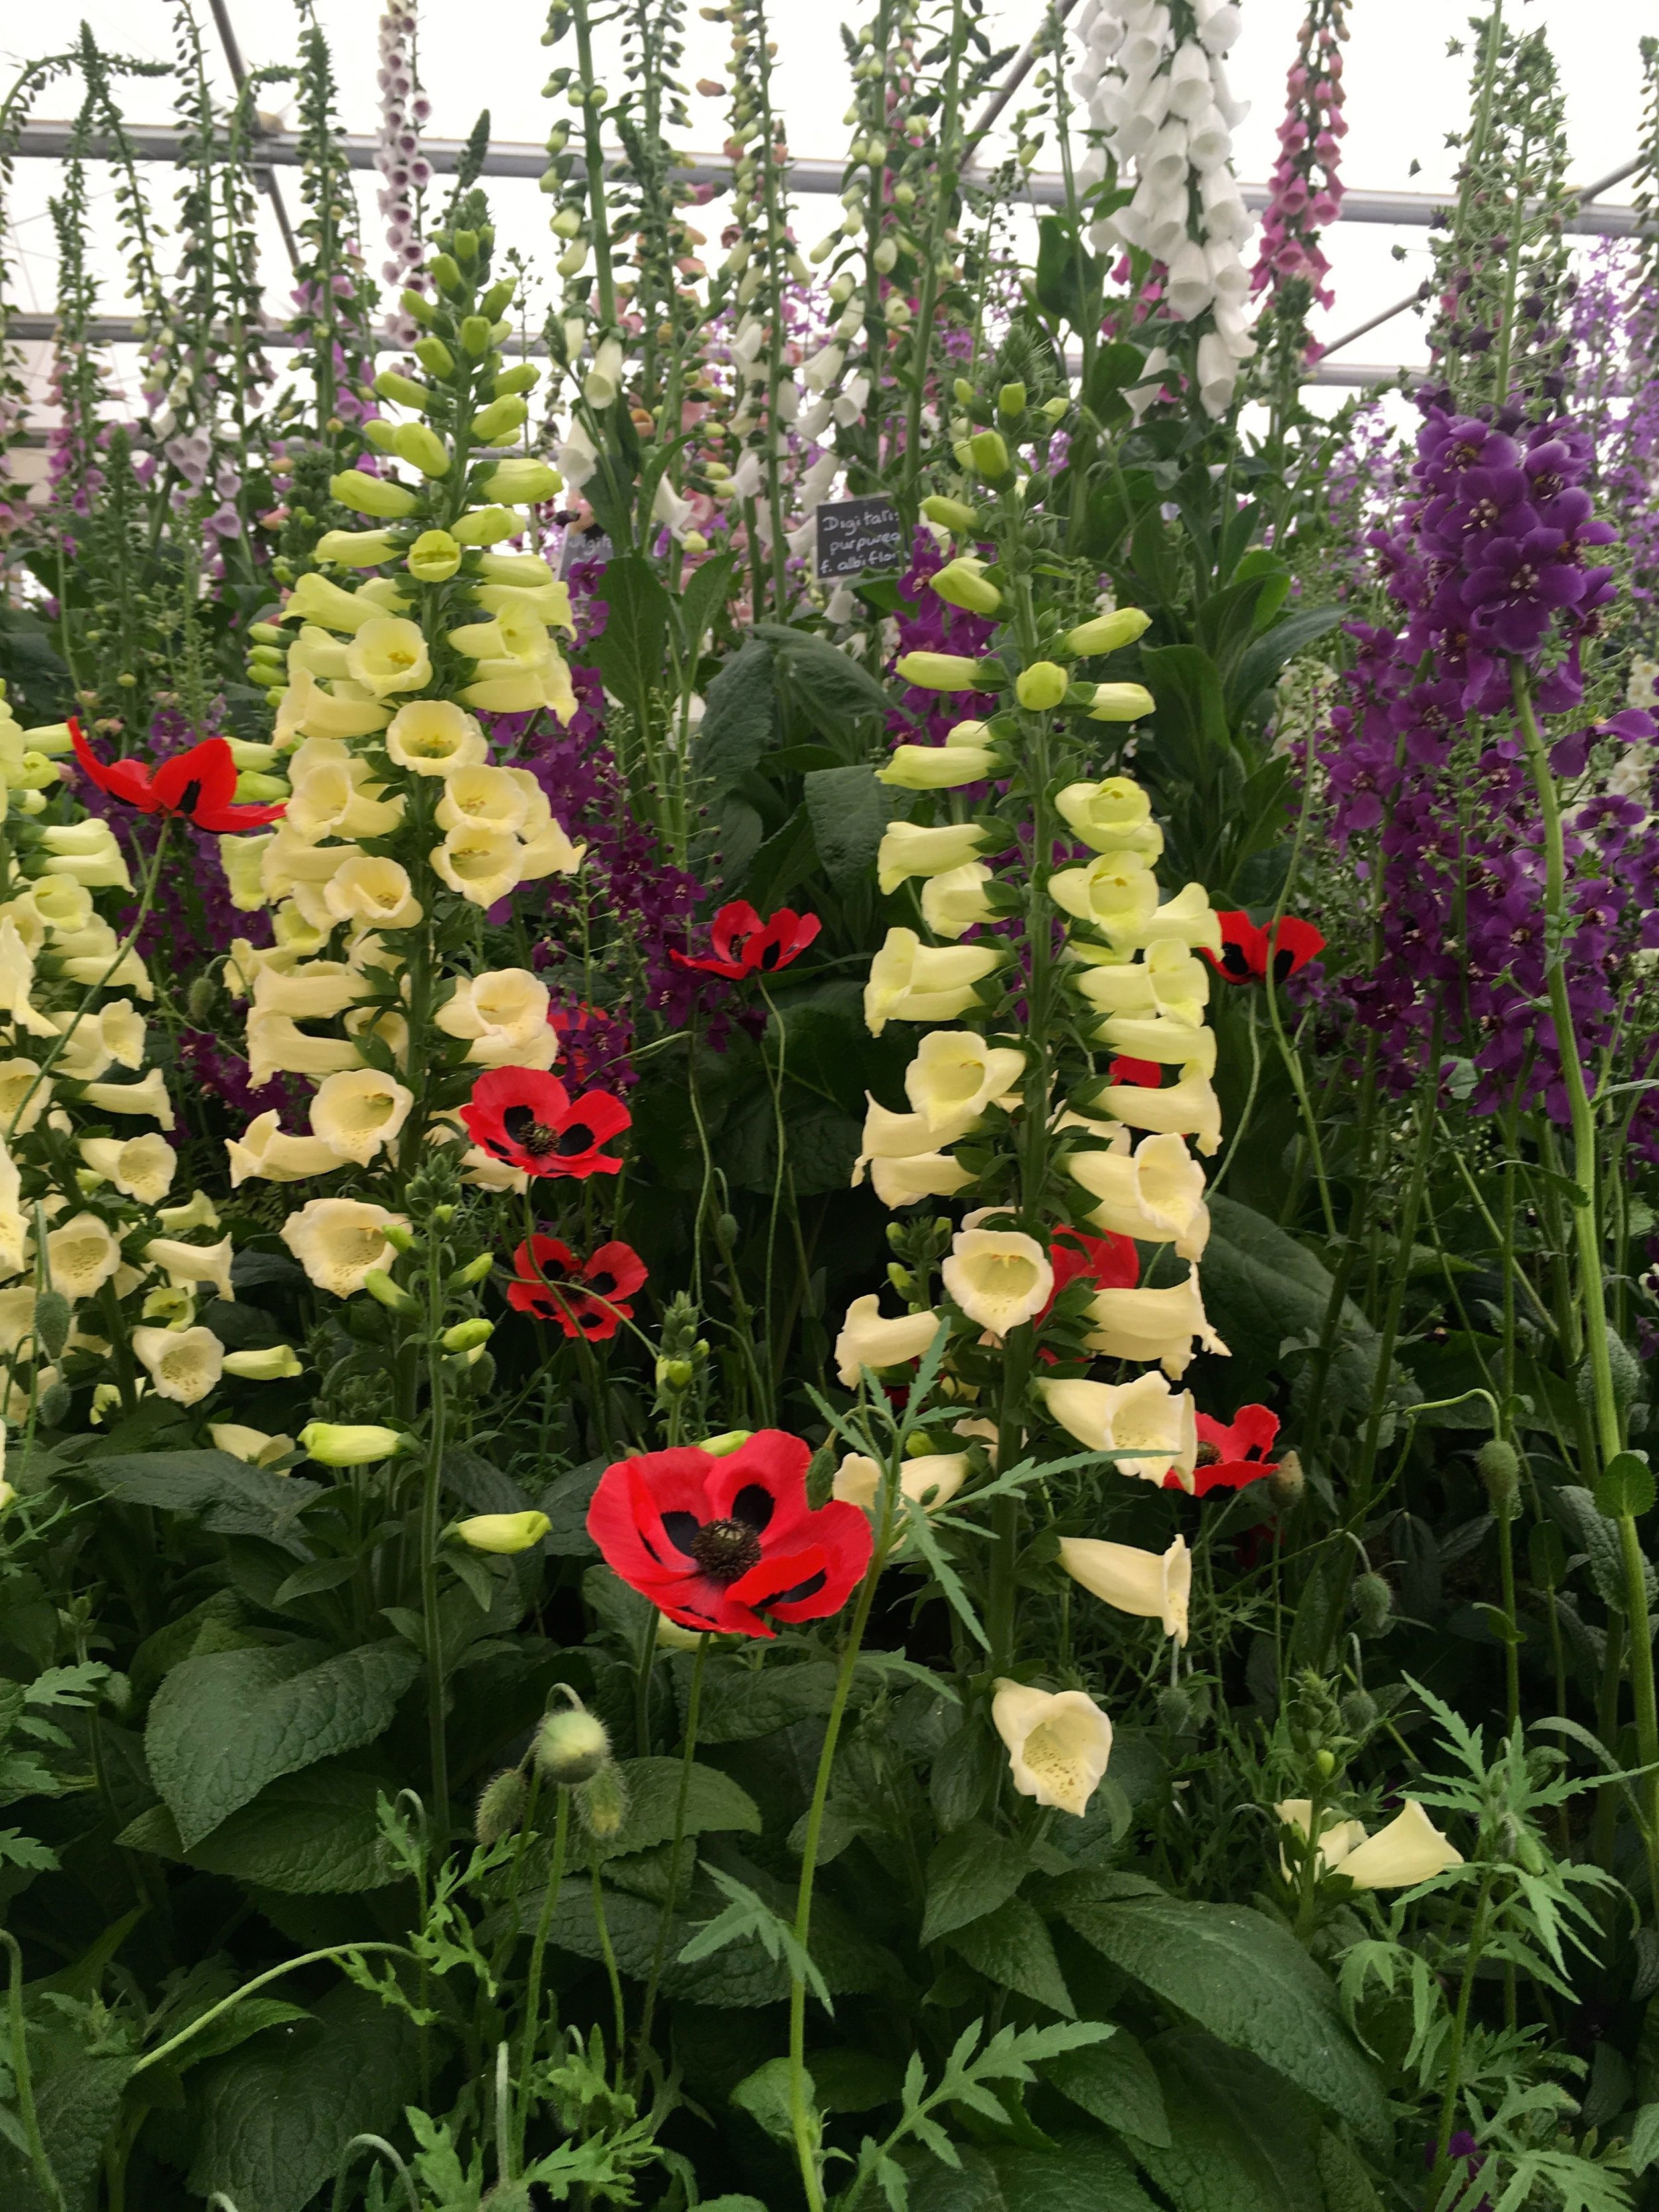 Foxgloves and a poppy or two too